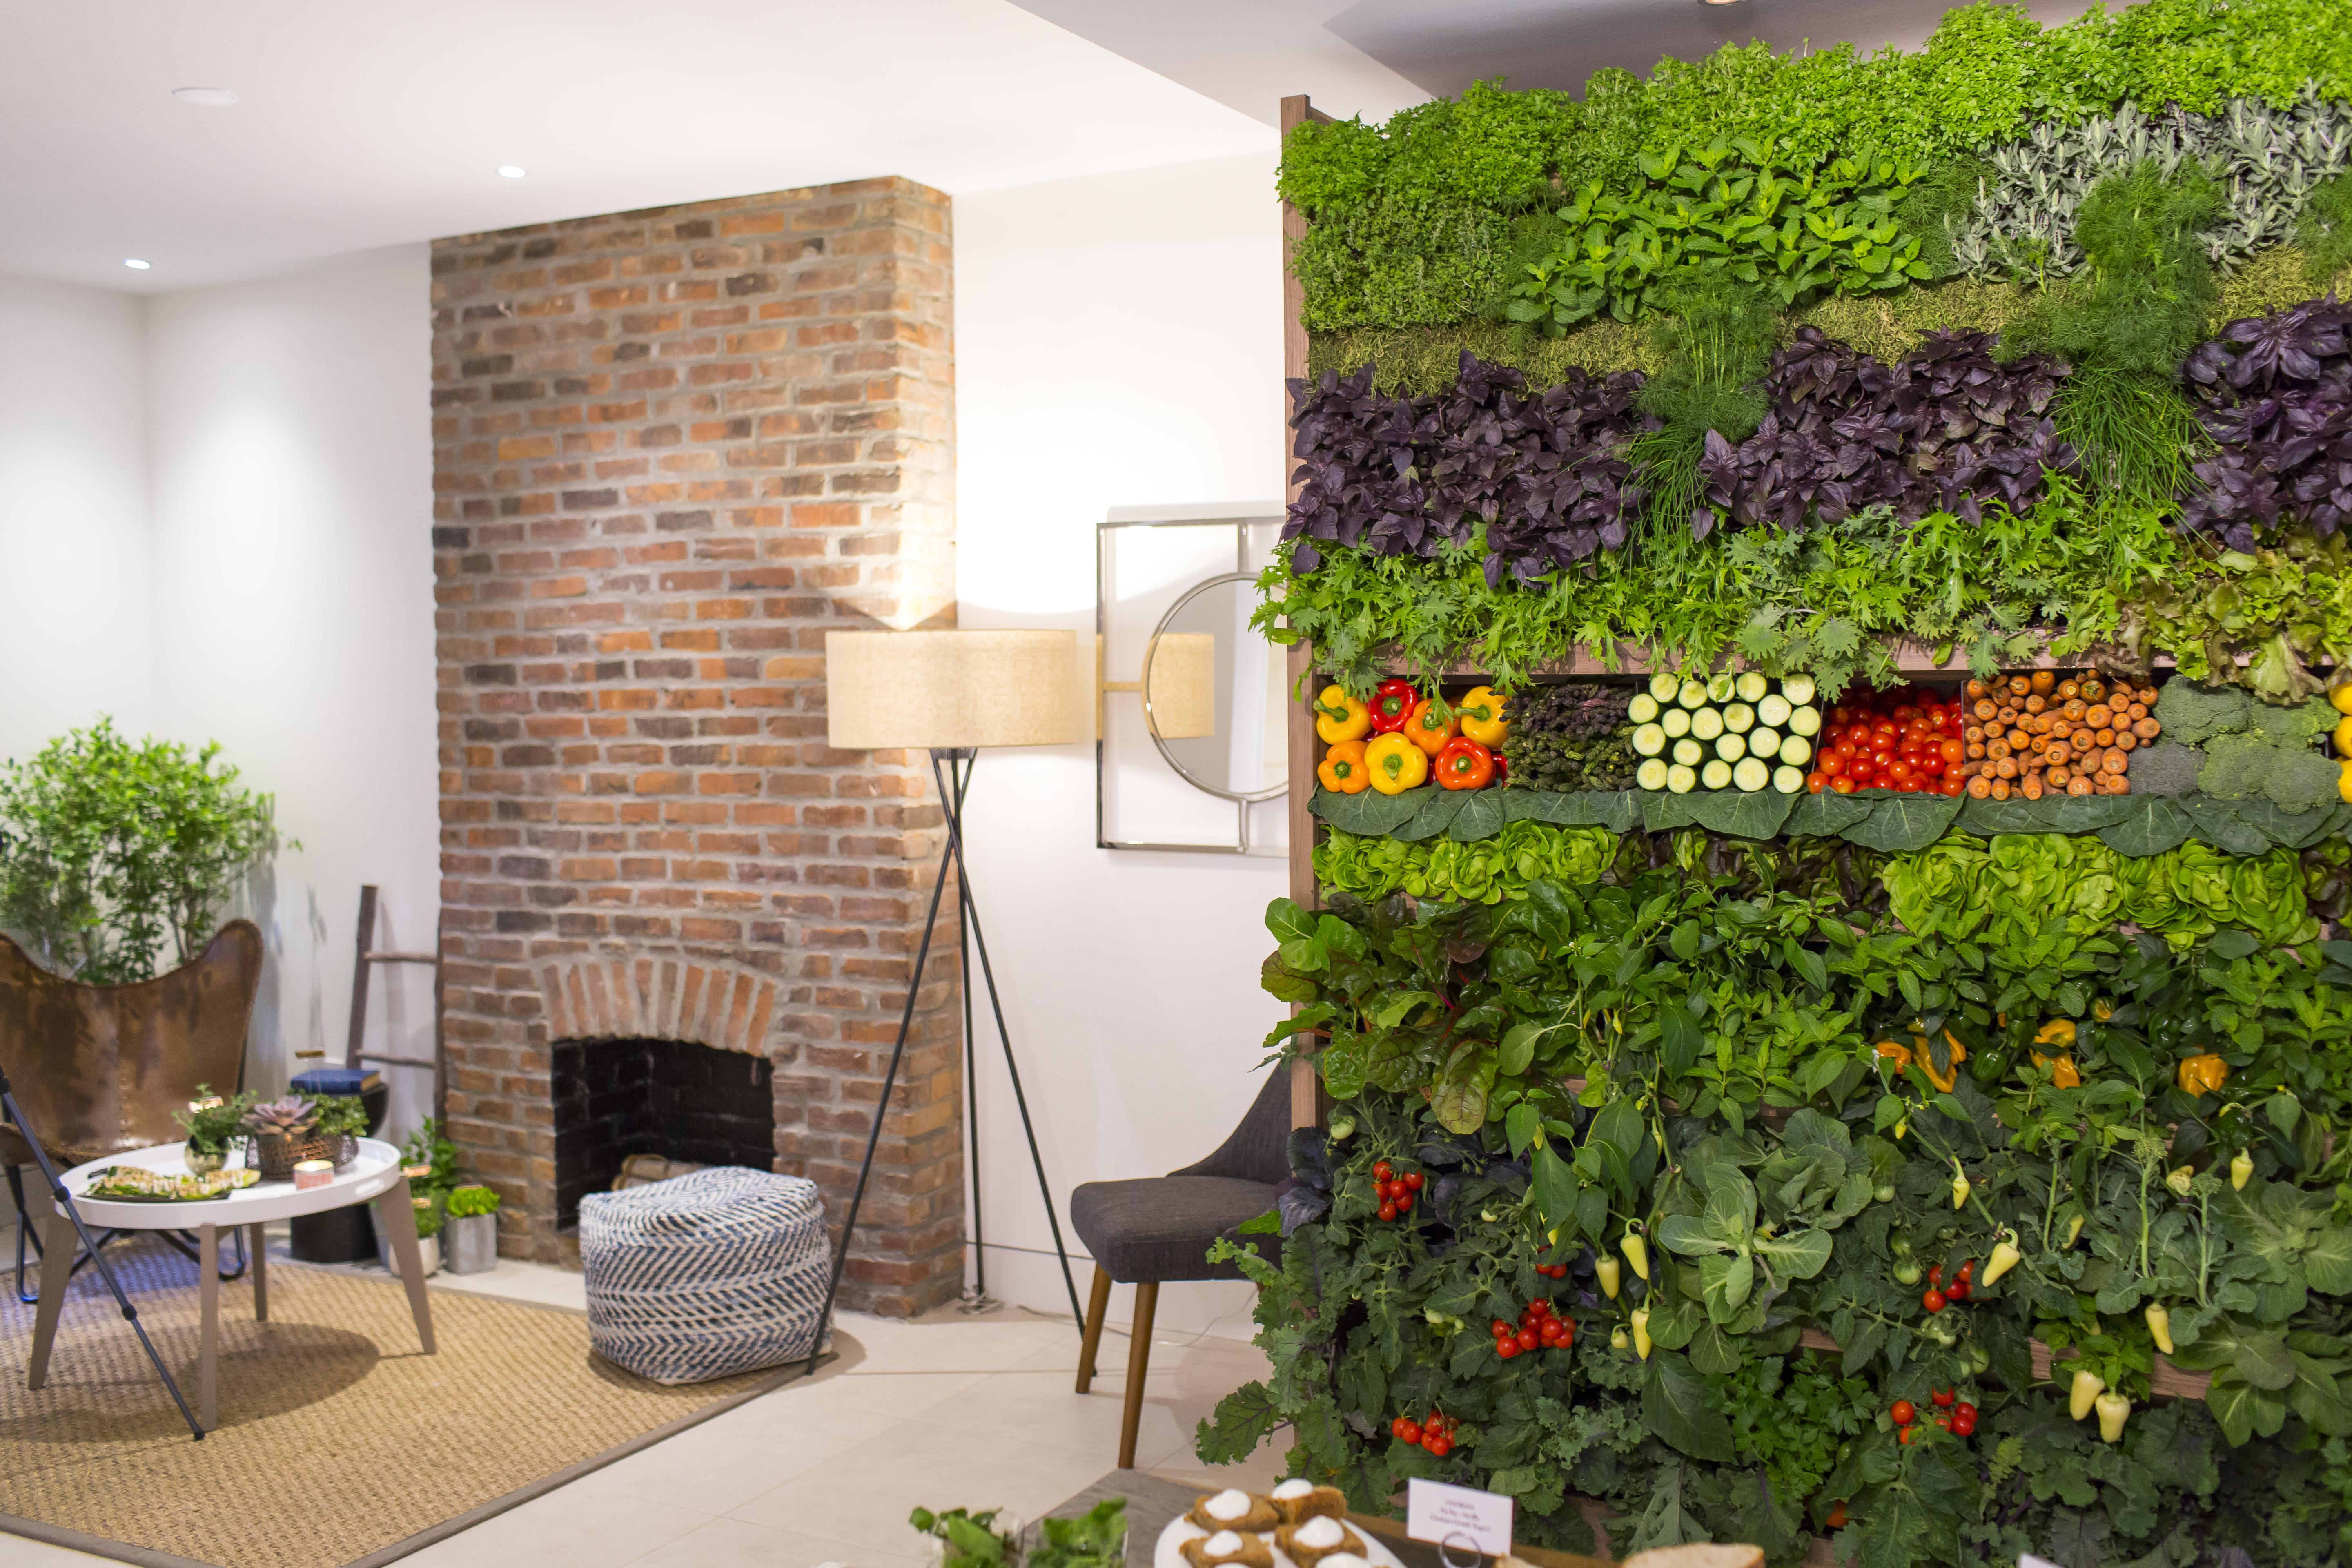 Chobani Creates The Worlds First Edible Home To Celebrate The